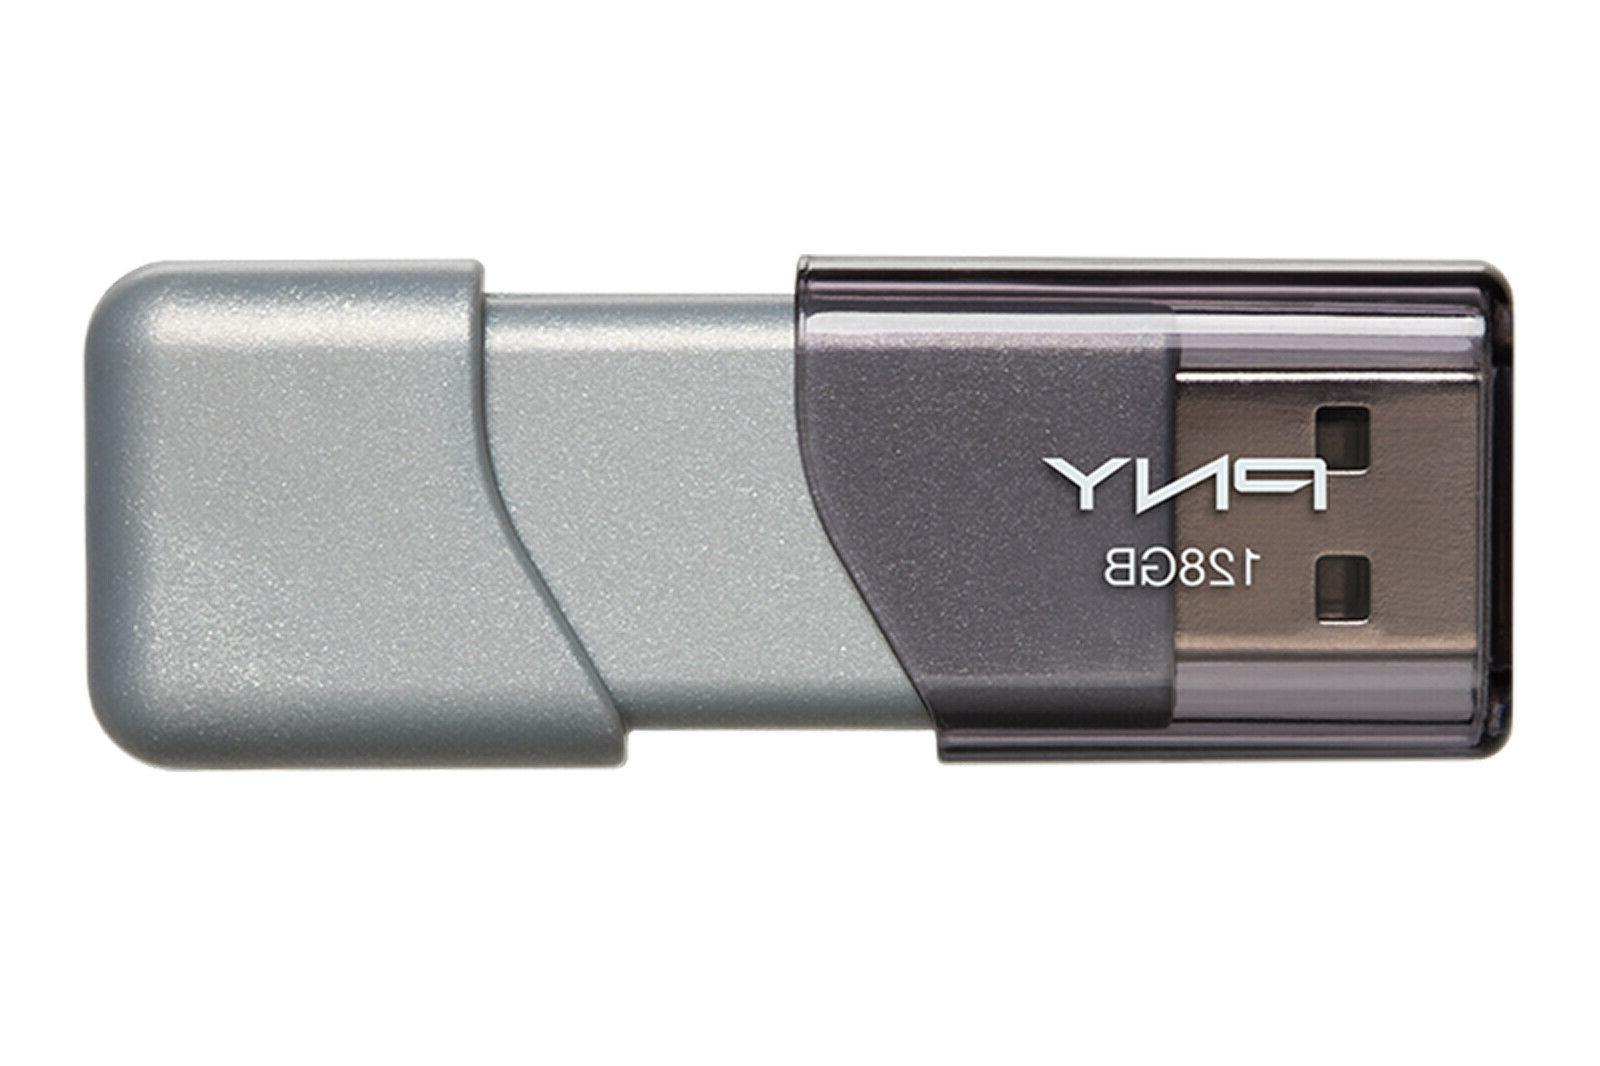 PNY Turbo 128GB USB 3.0 Flash Drive - P-FD128GTBOP-GE